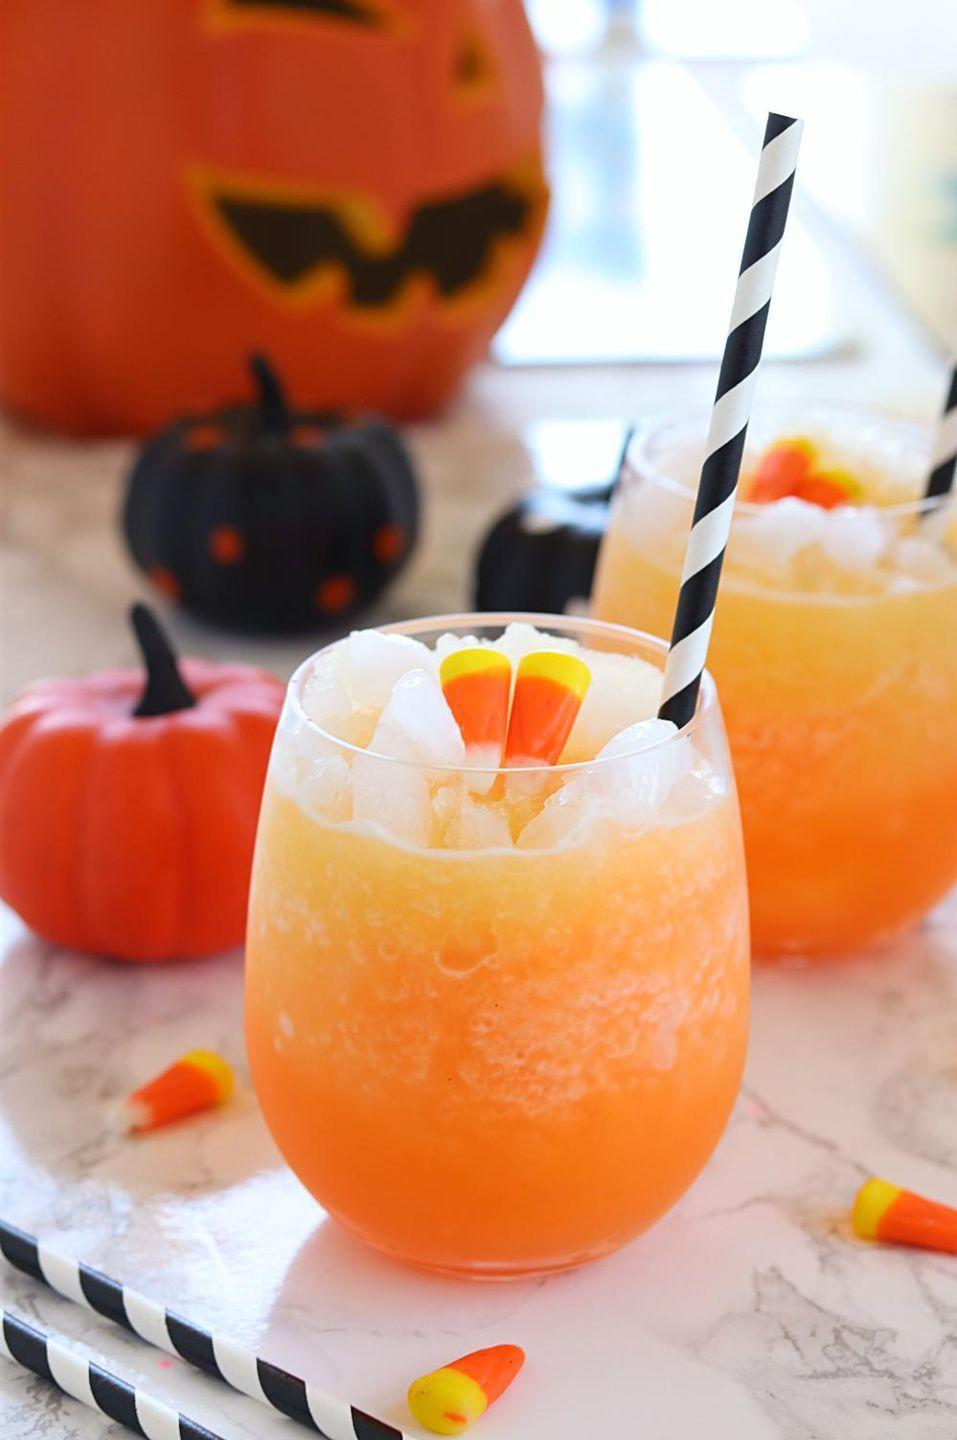 """<p>Here's another festive sherbet punch option for orange fanatics! This one is decked out with candy corns for an extra jolt of sweetness.</p><p><strong>Get the recipe at <a href=""""https://www.ruchiskitchen.com/halloween-orange-sherbet-punch/"""" rel=""""nofollow noopener"""" target=""""_blank"""" data-ylk=""""slk:Ruchi's Kitchen"""" class=""""link rapid-noclick-resp"""">Ruchi's Kitchen</a>.</strong></p><p><strong><a class=""""link rapid-noclick-resp"""" href=""""https://www.amazon.com/dp/B01DCGTNRE/?tag=syn-yahoo-20&ascsubtag=%5Bartid%7C2164.g.36792938%5Bsrc%7Cyahoo-us"""" rel=""""nofollow noopener"""" target=""""_blank"""" data-ylk=""""slk:SHOP BLACK AND WHITE PAPER STRAWS"""">SHOP BLACK AND WHITE PAPER STRAWS</a><br></strong></p>"""